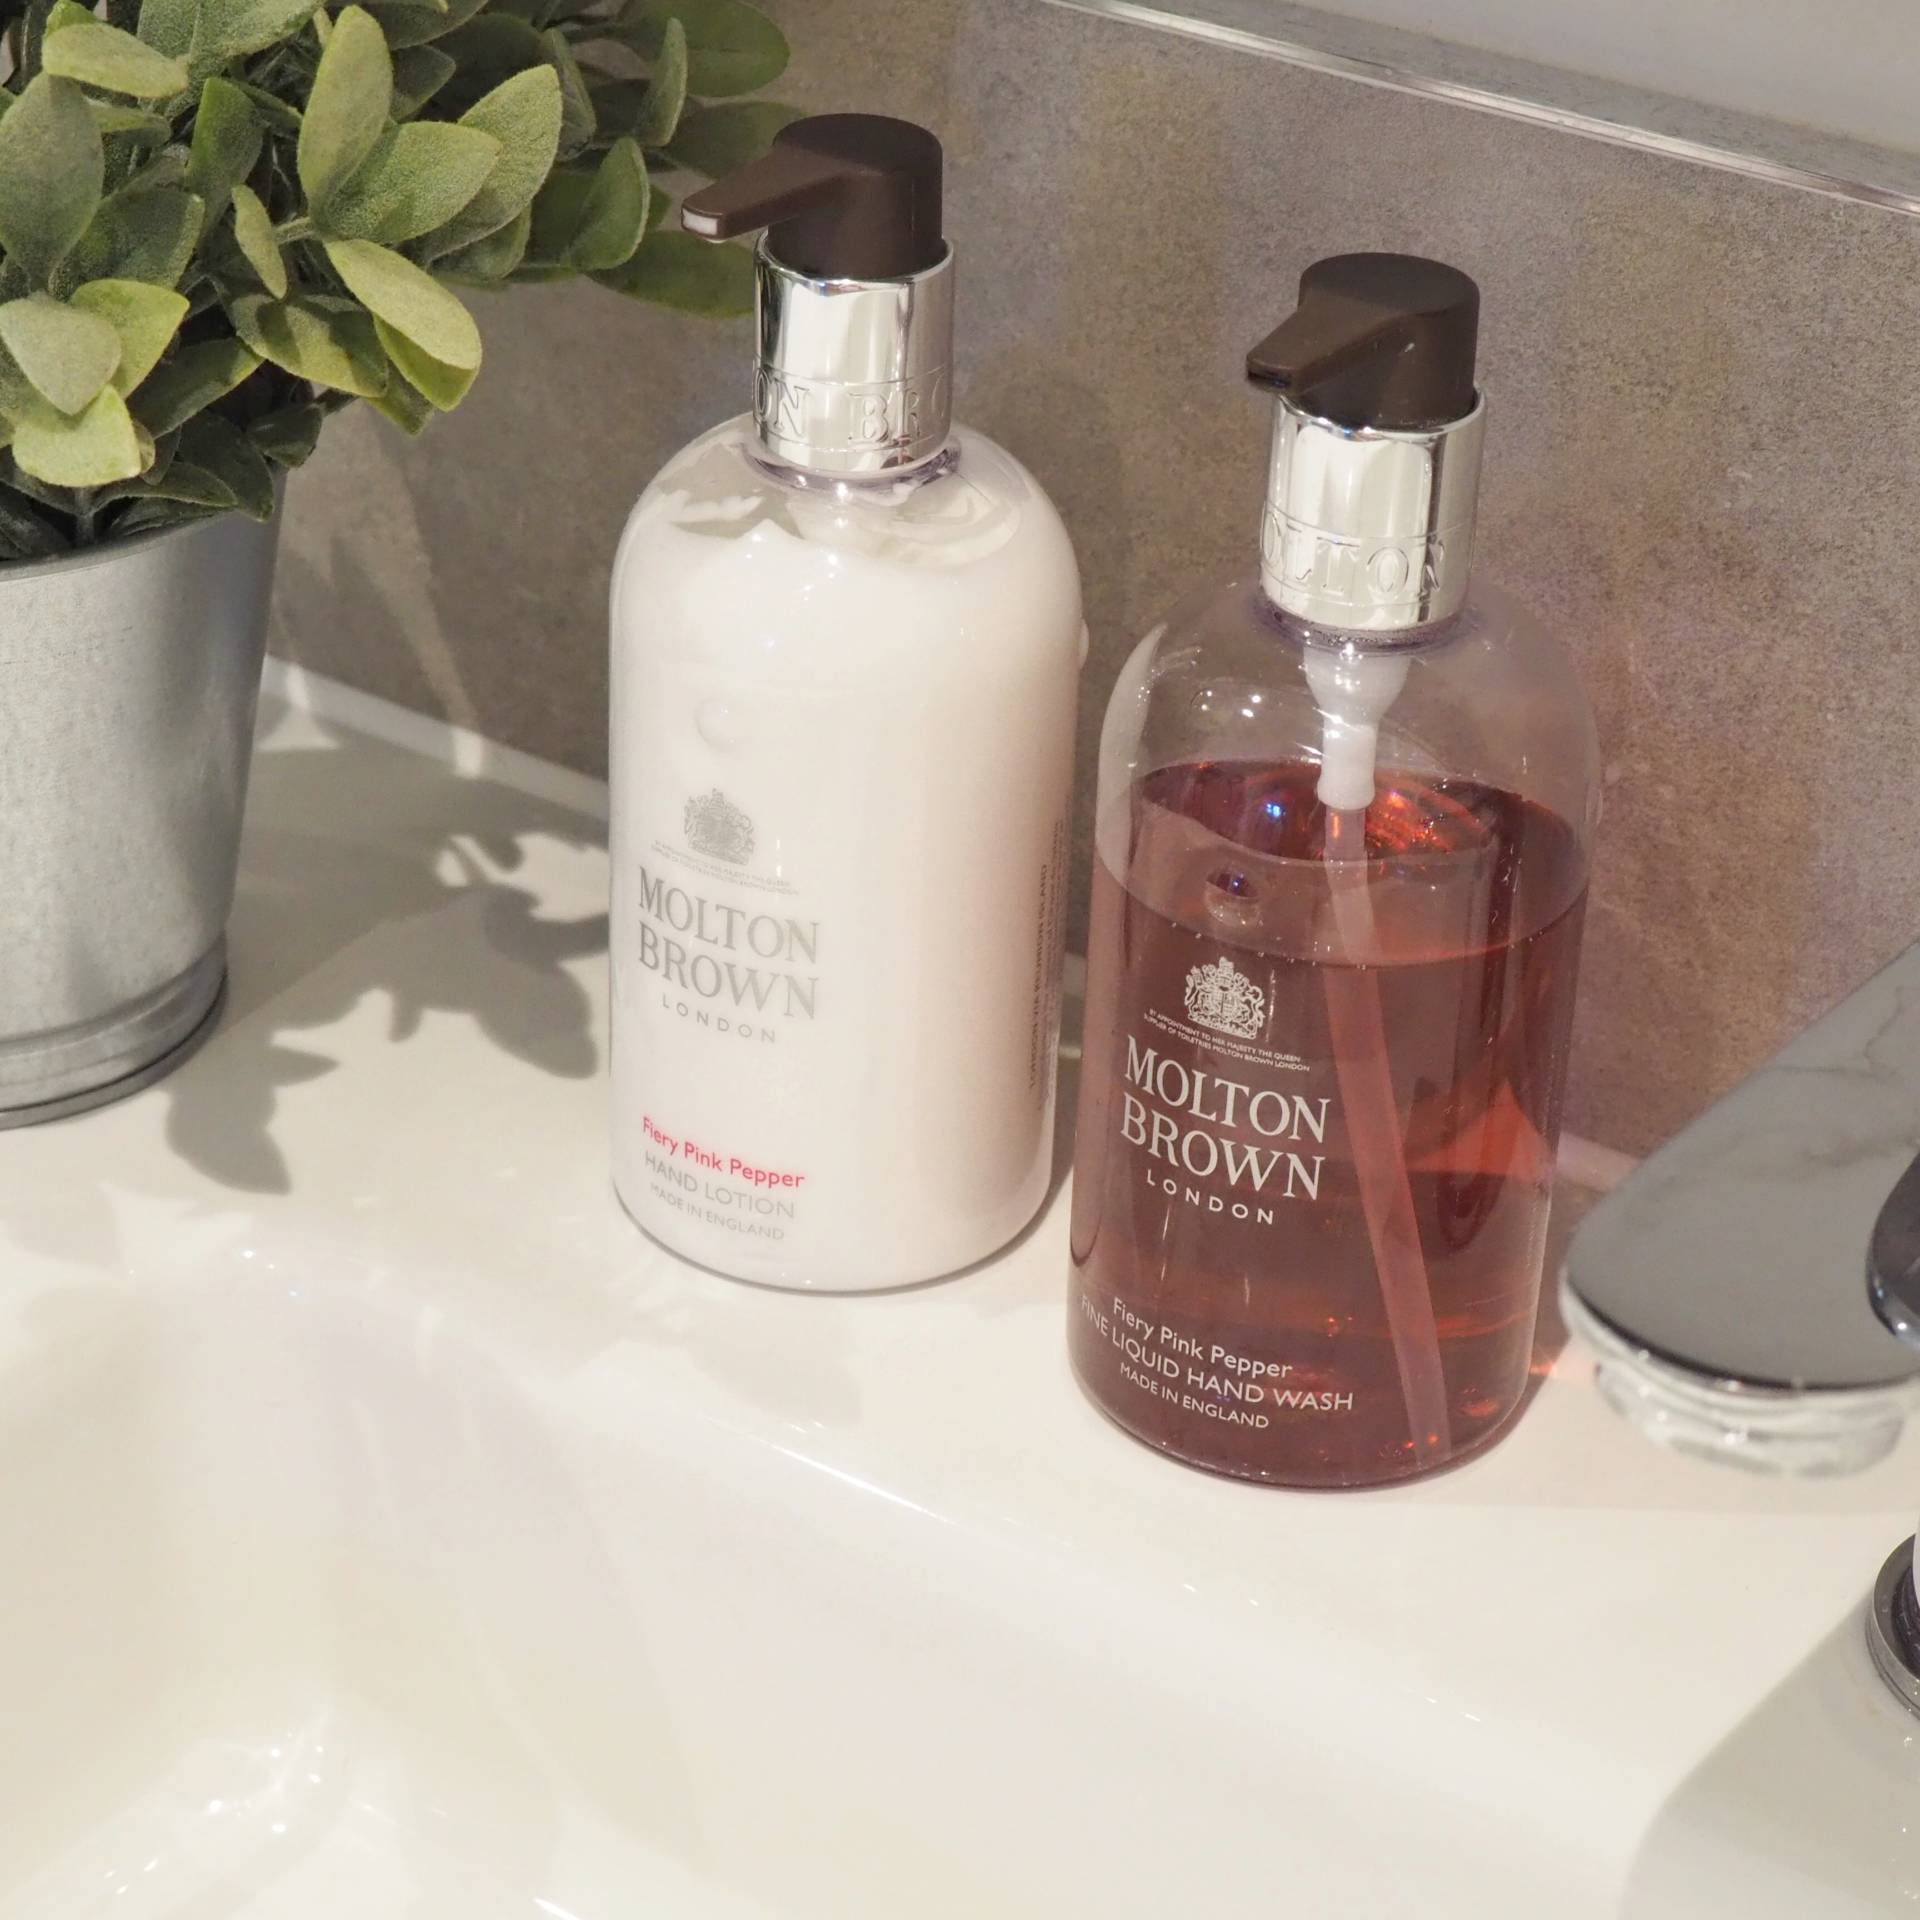 Molton Brown Hand Wash Review